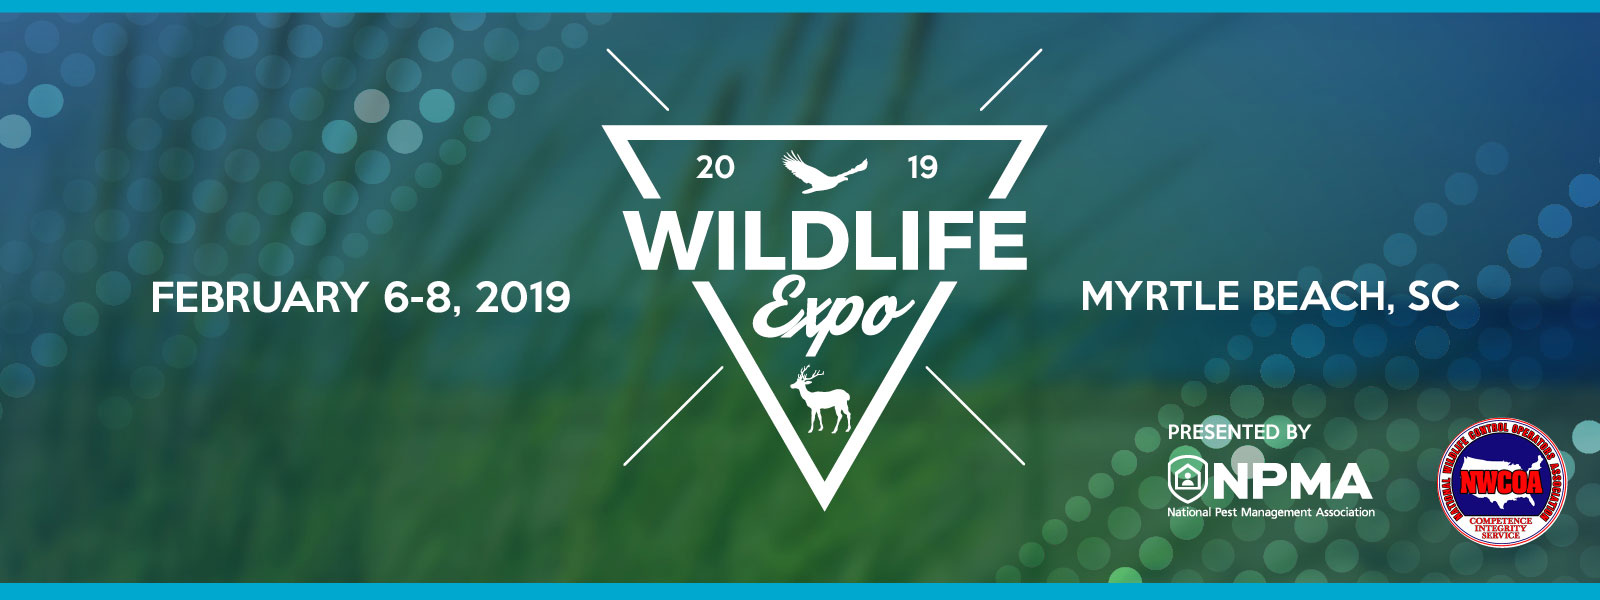 Wildlife Expo 2019